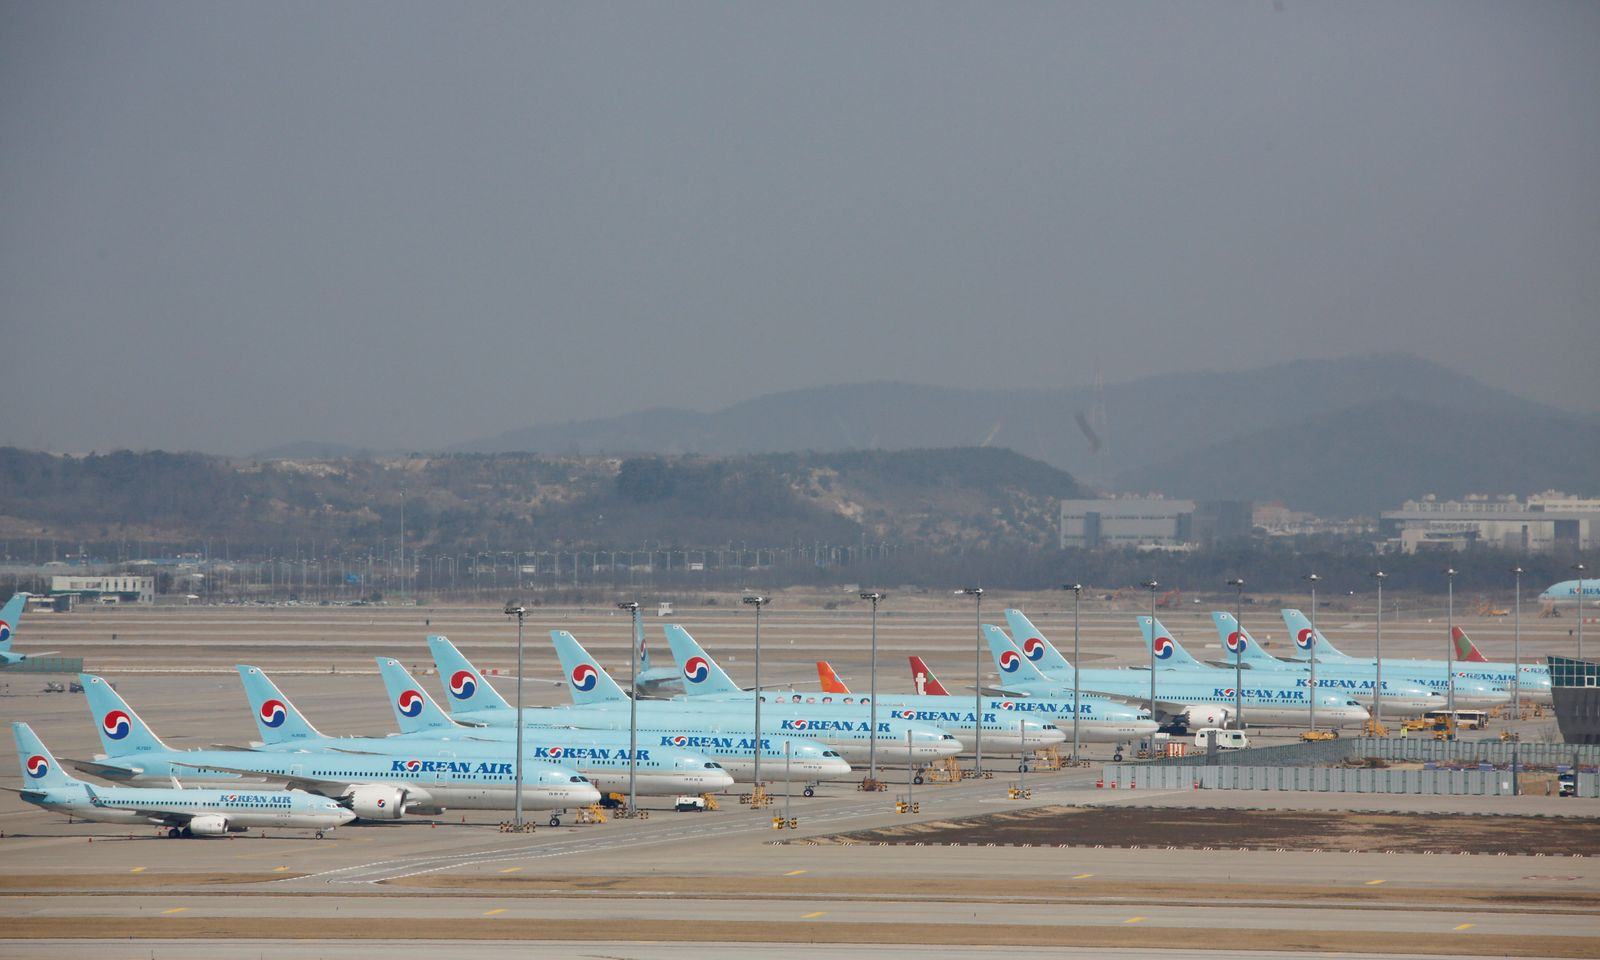 Korean Air's passenger planes are parked following outbreak of COVID-19, at Incheon International Airport